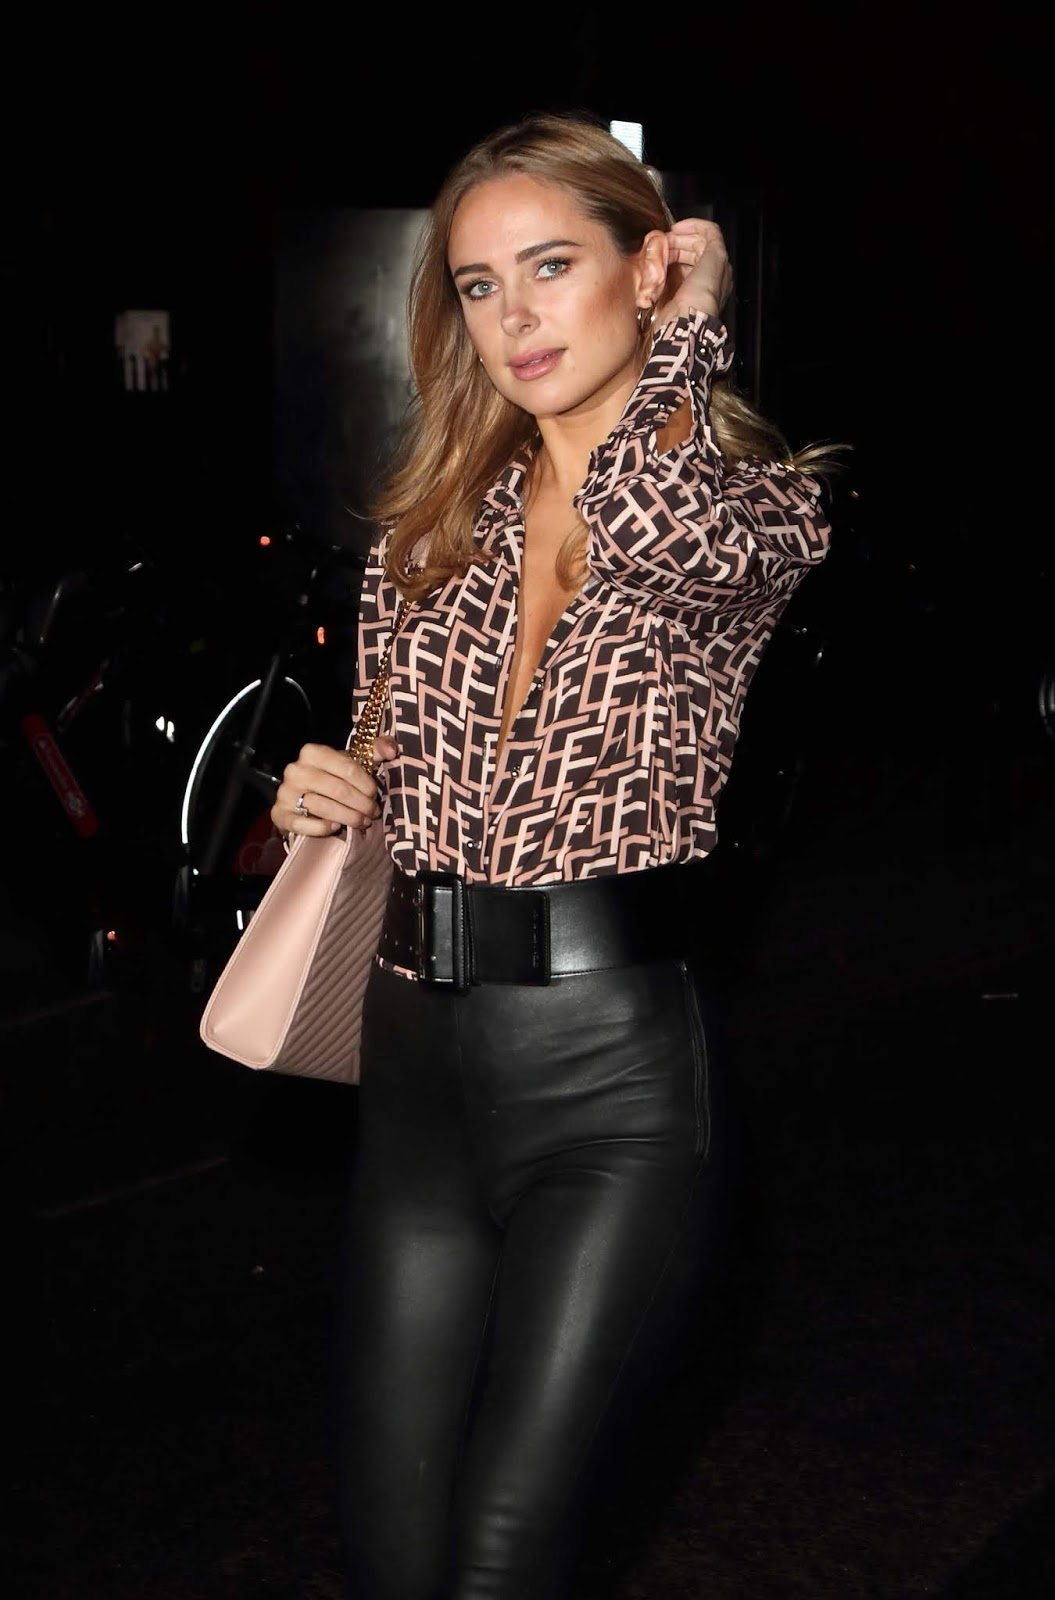 Lovely Ladies In Leather Kimberley Garner In Leather Pants